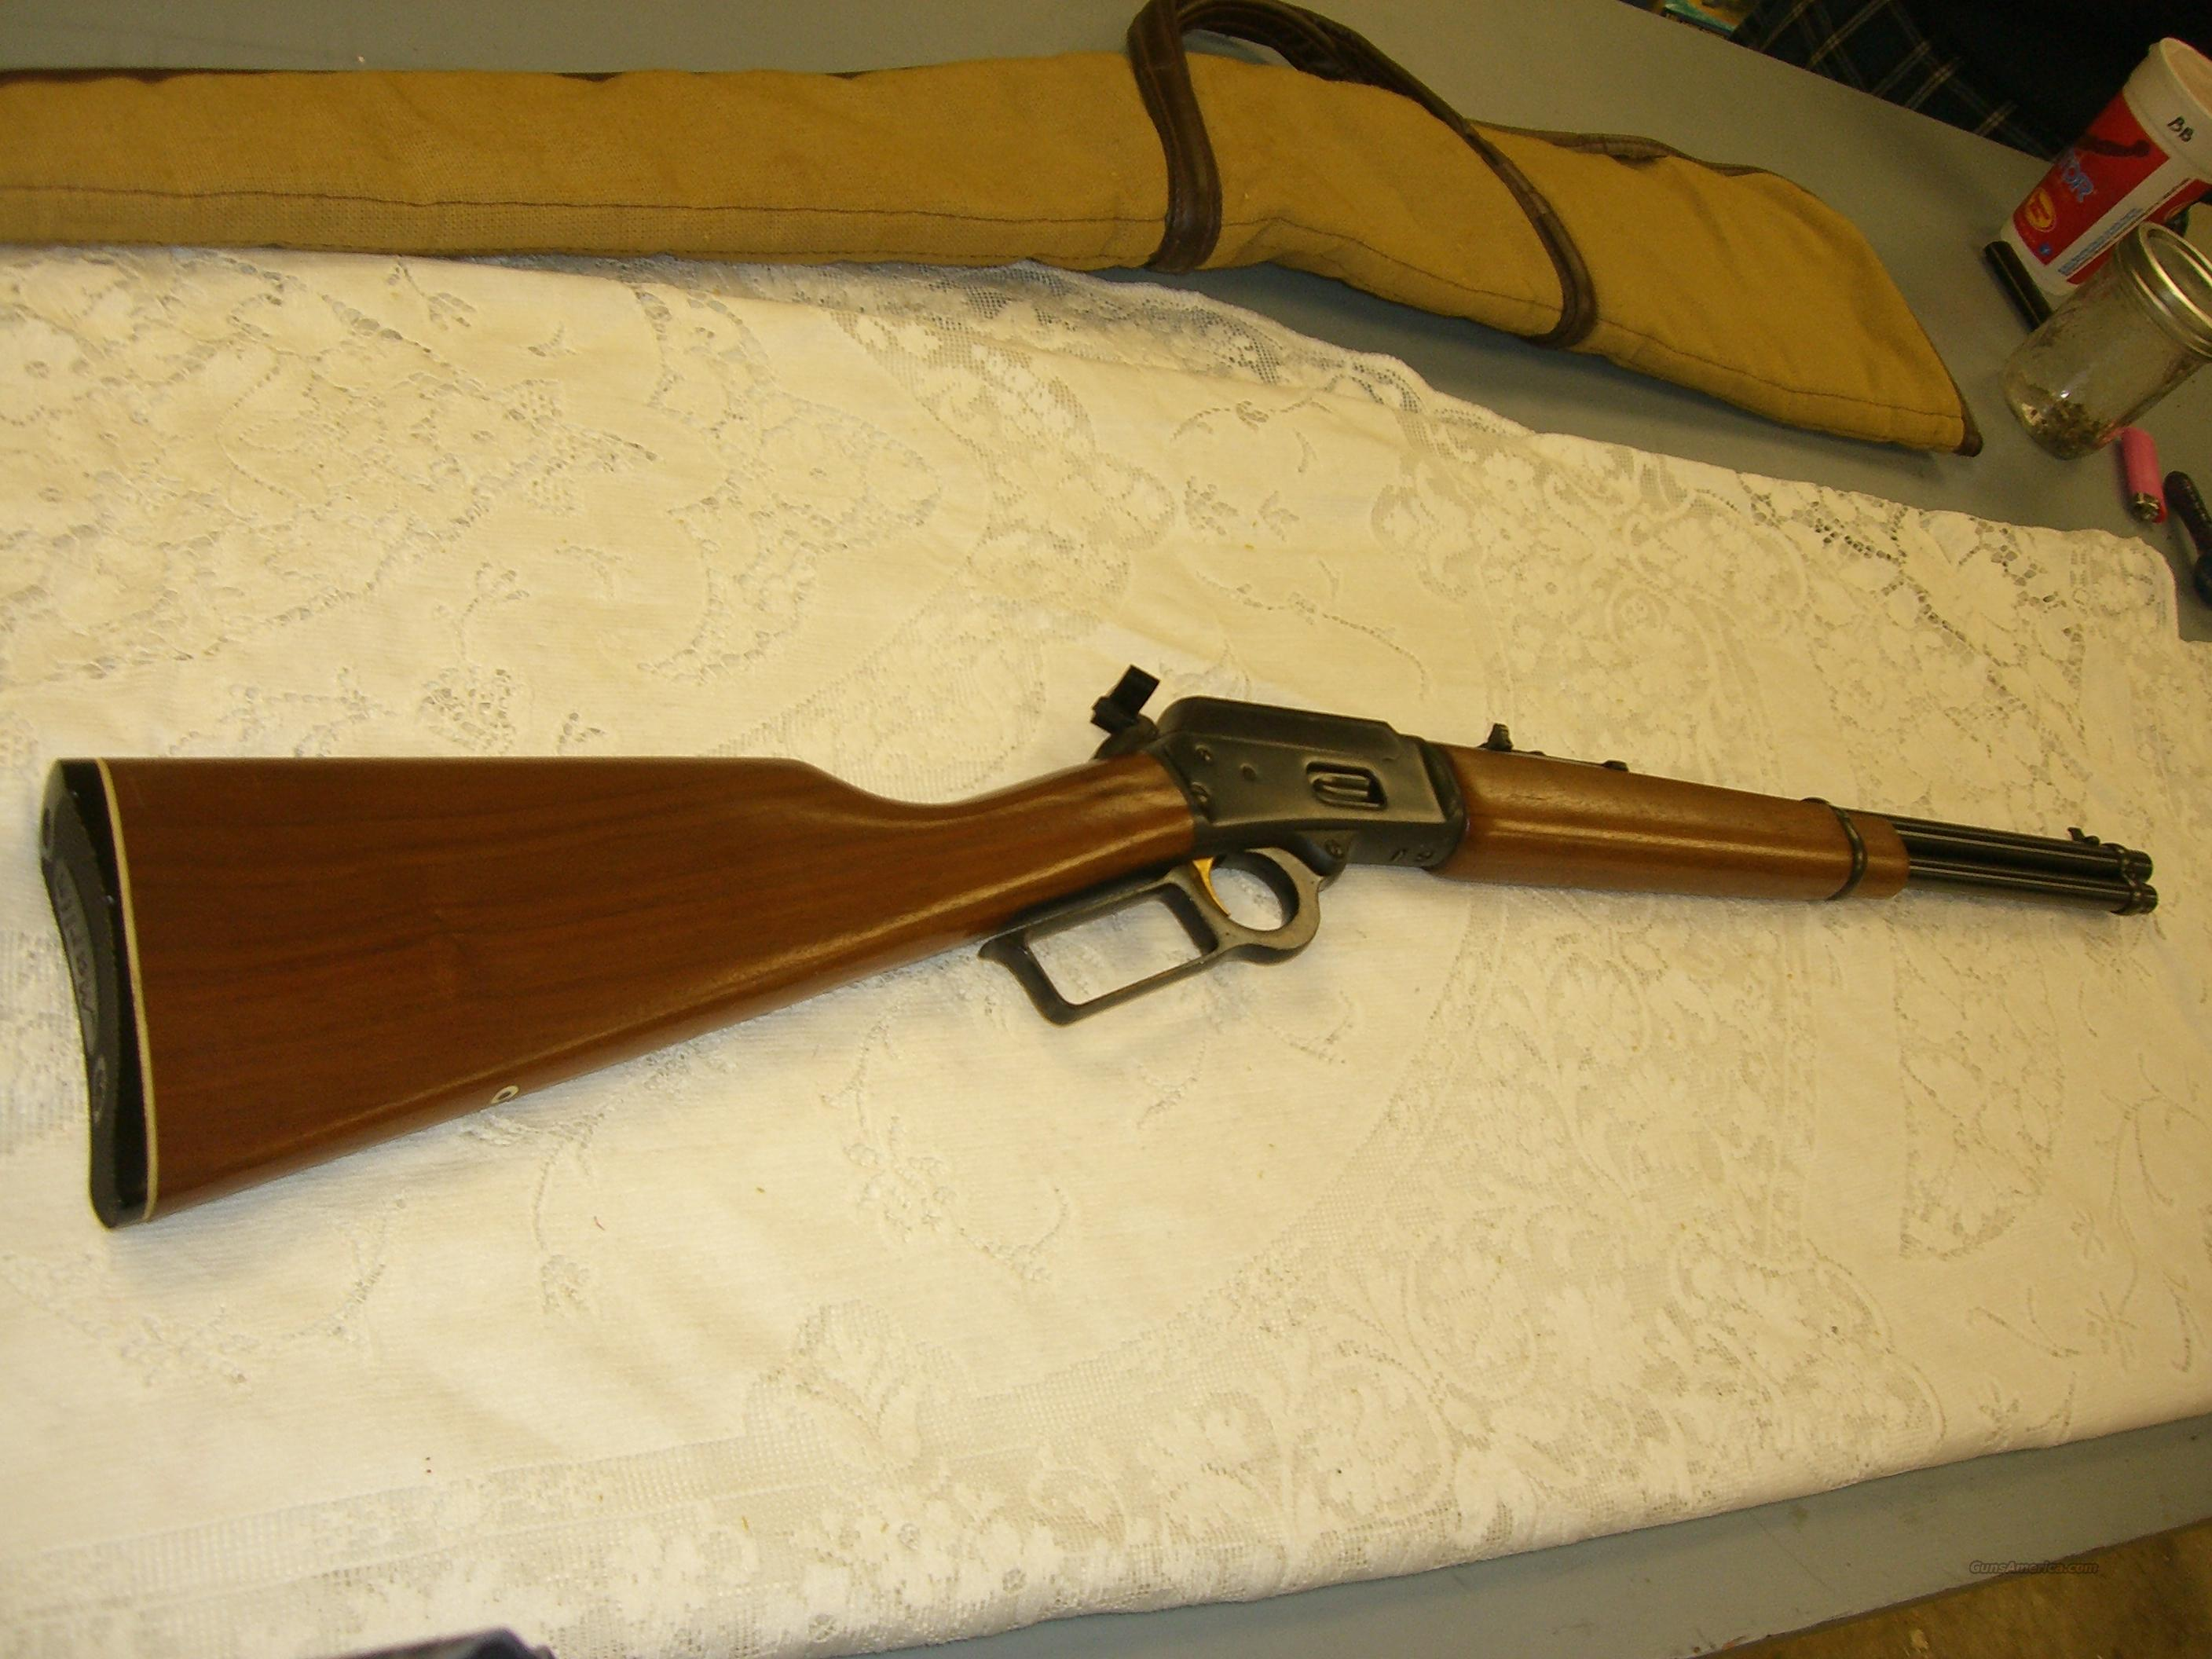 MARLIN 1894 C 357 MAG / 38 SPL  Guns > Rifles > Marlin Rifles > Modern > Lever Action